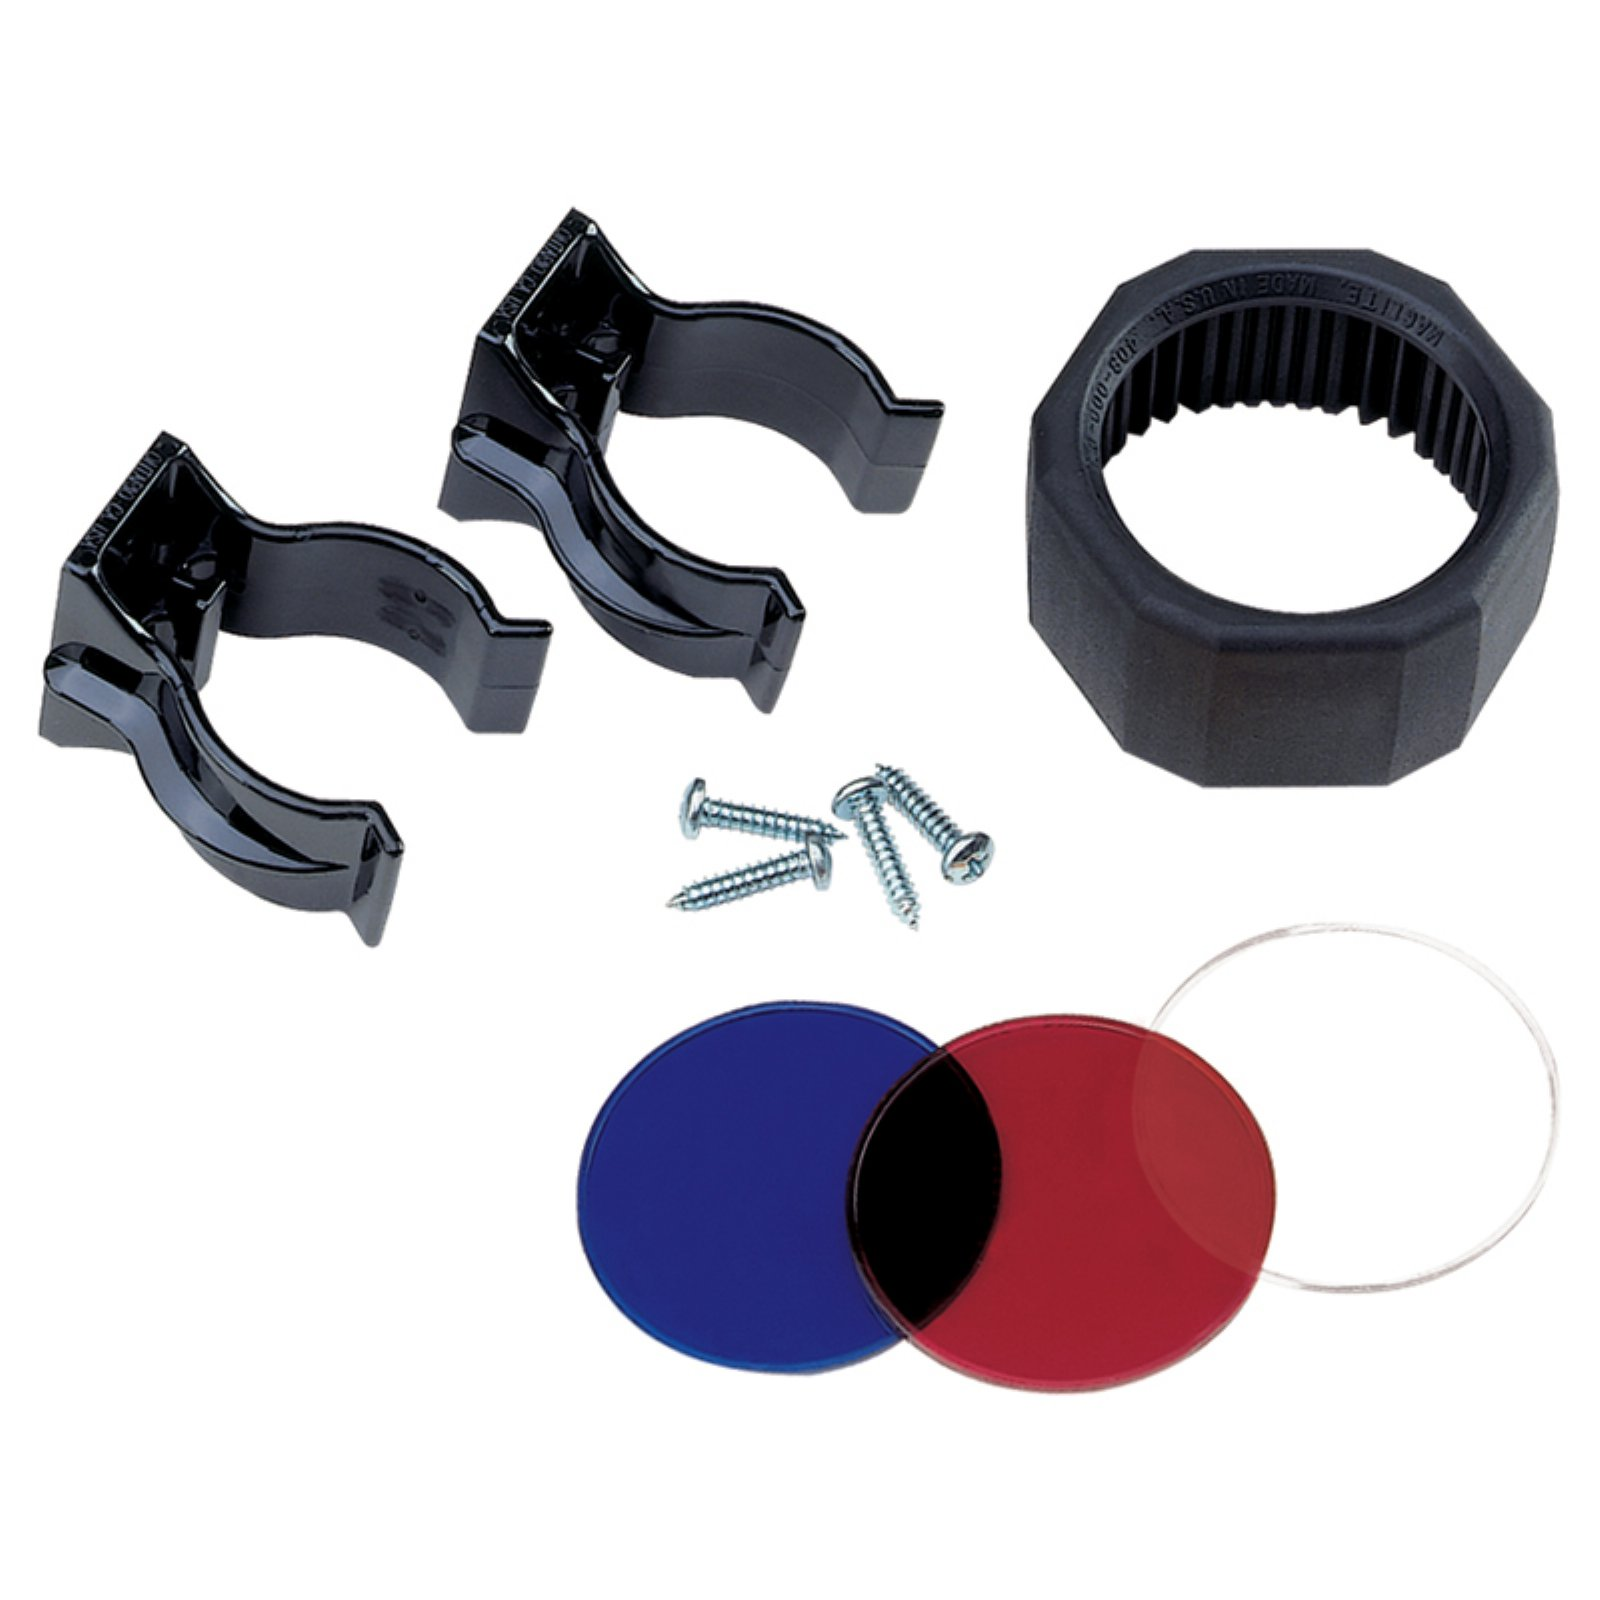 MAG Instrument Accessory Pack for D Cell Flashlight